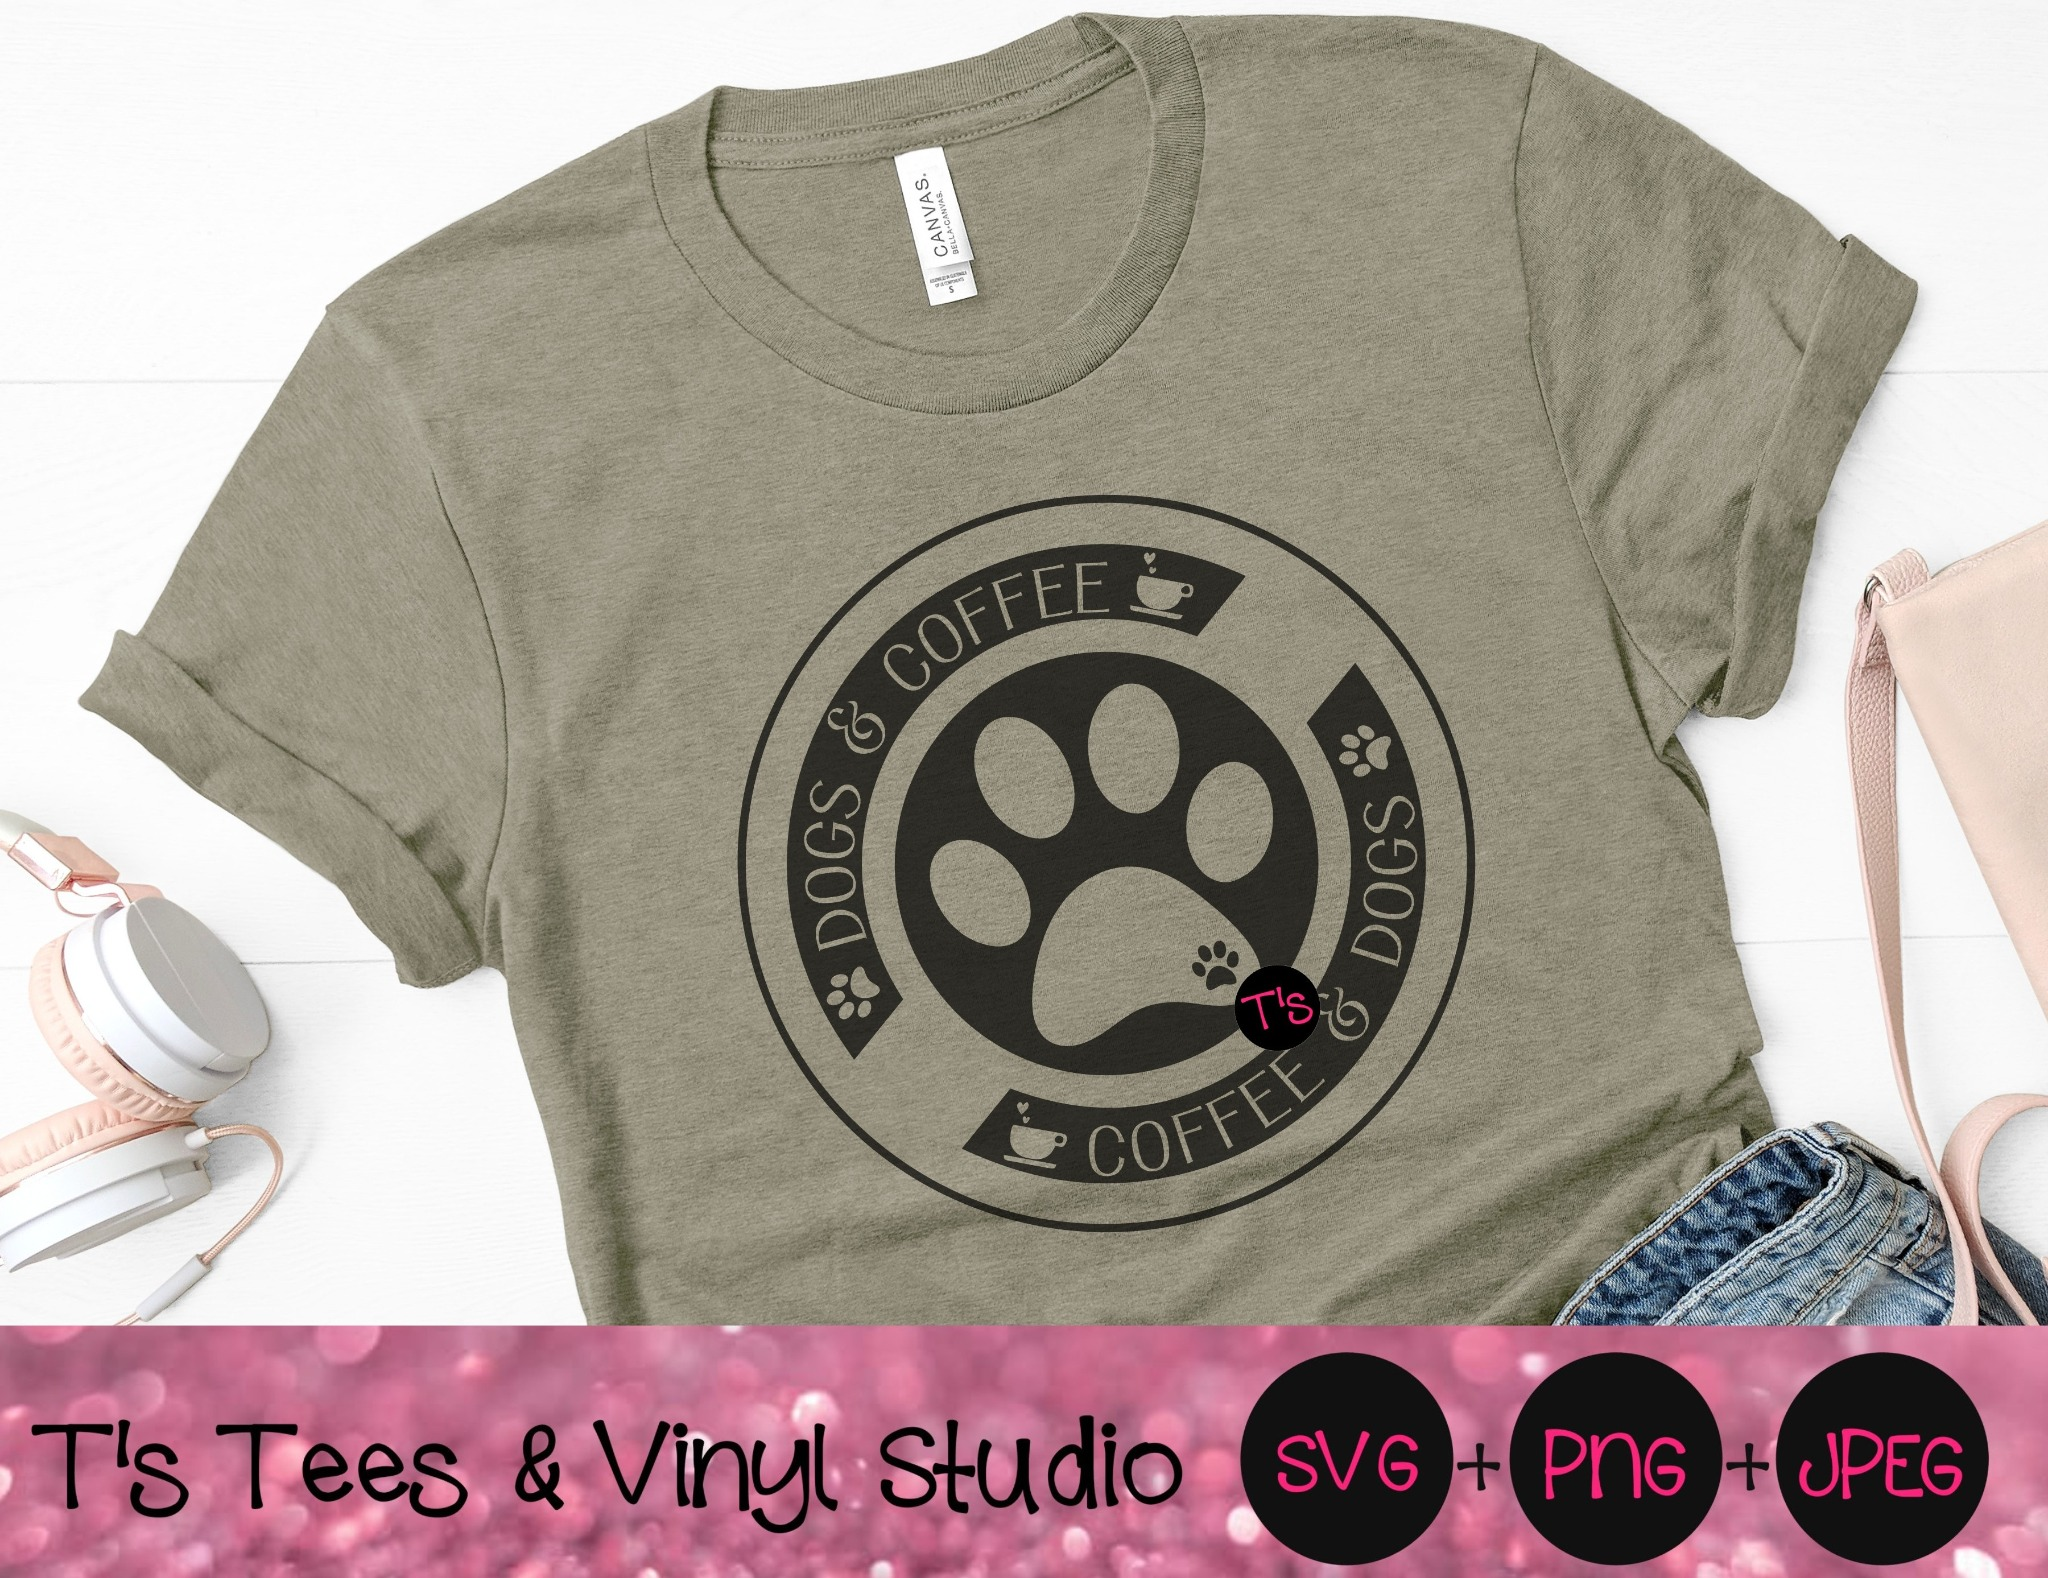 Dogs & Coffee Svg, Coffee Svg, Dogs Svg, Coffee and Dogs Are Life, Dogs And Coffee Circle, Paw Print